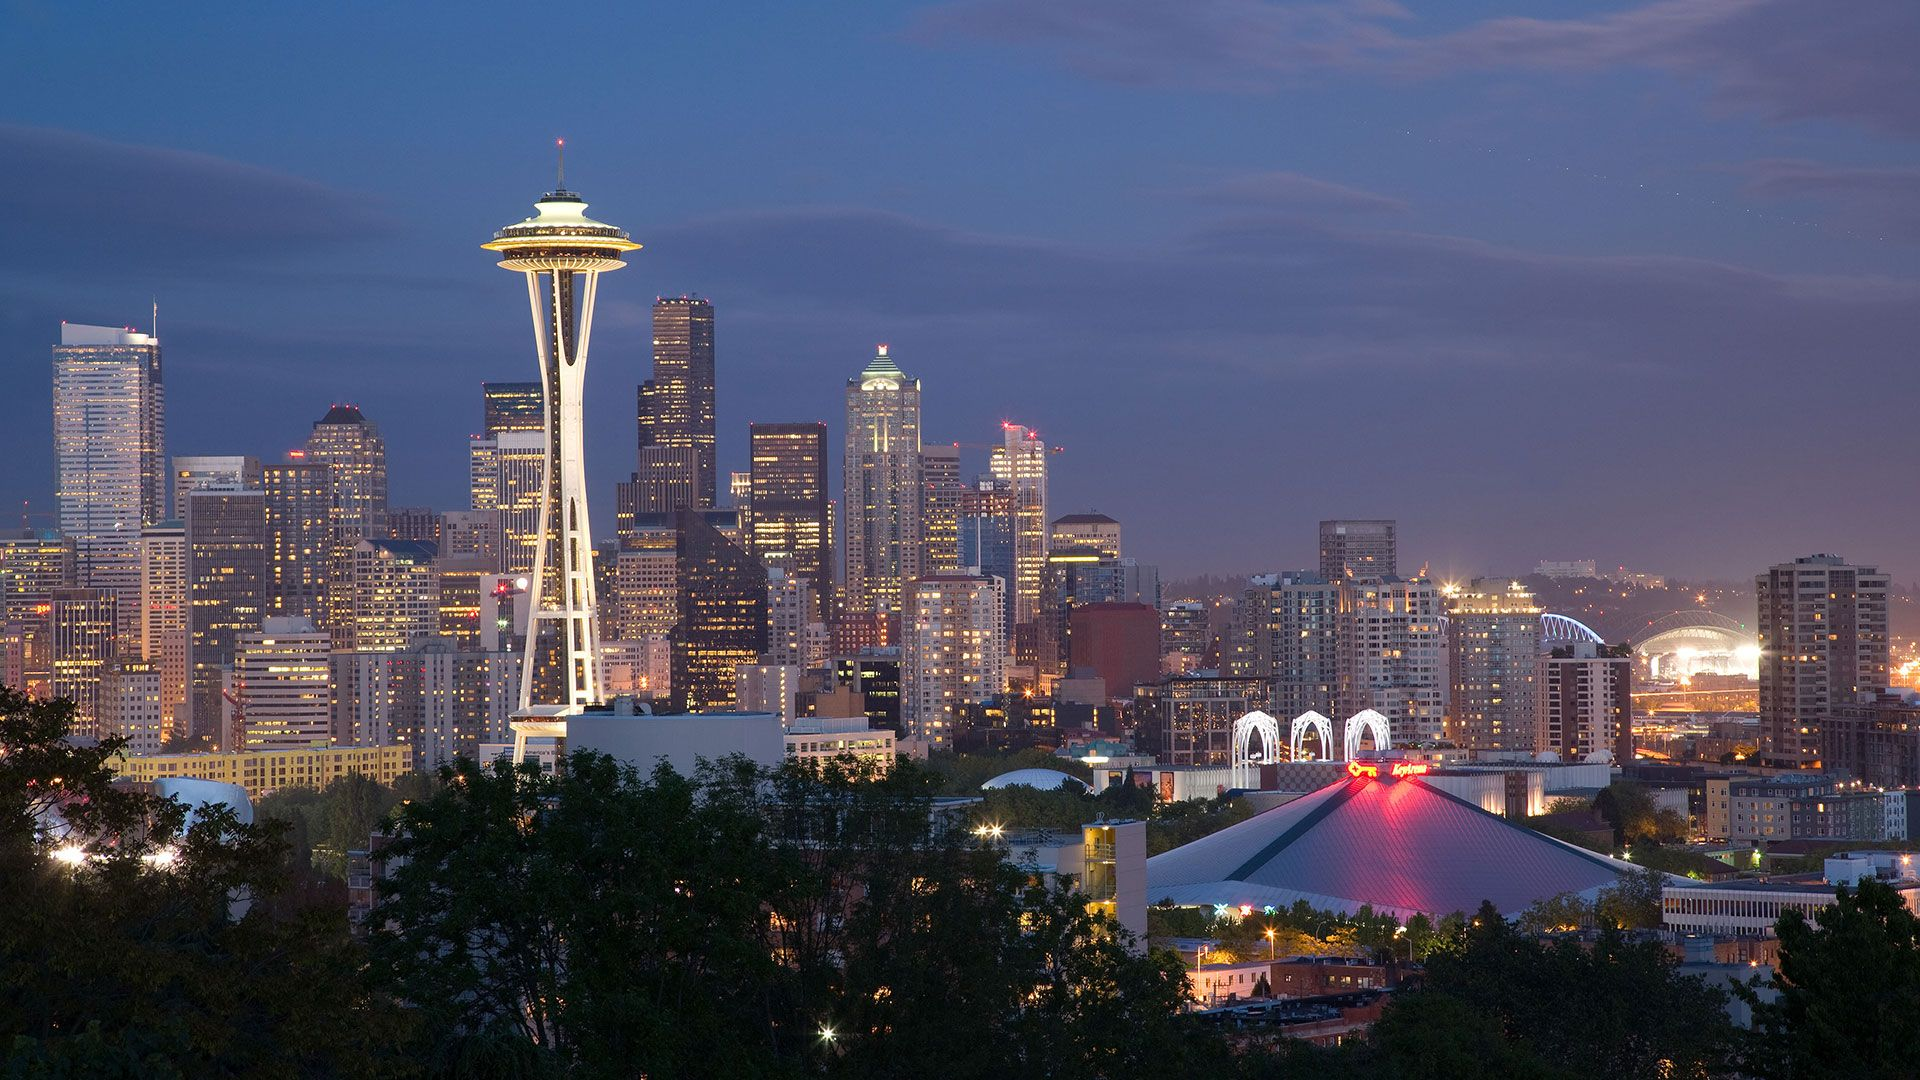 Seattle computer background